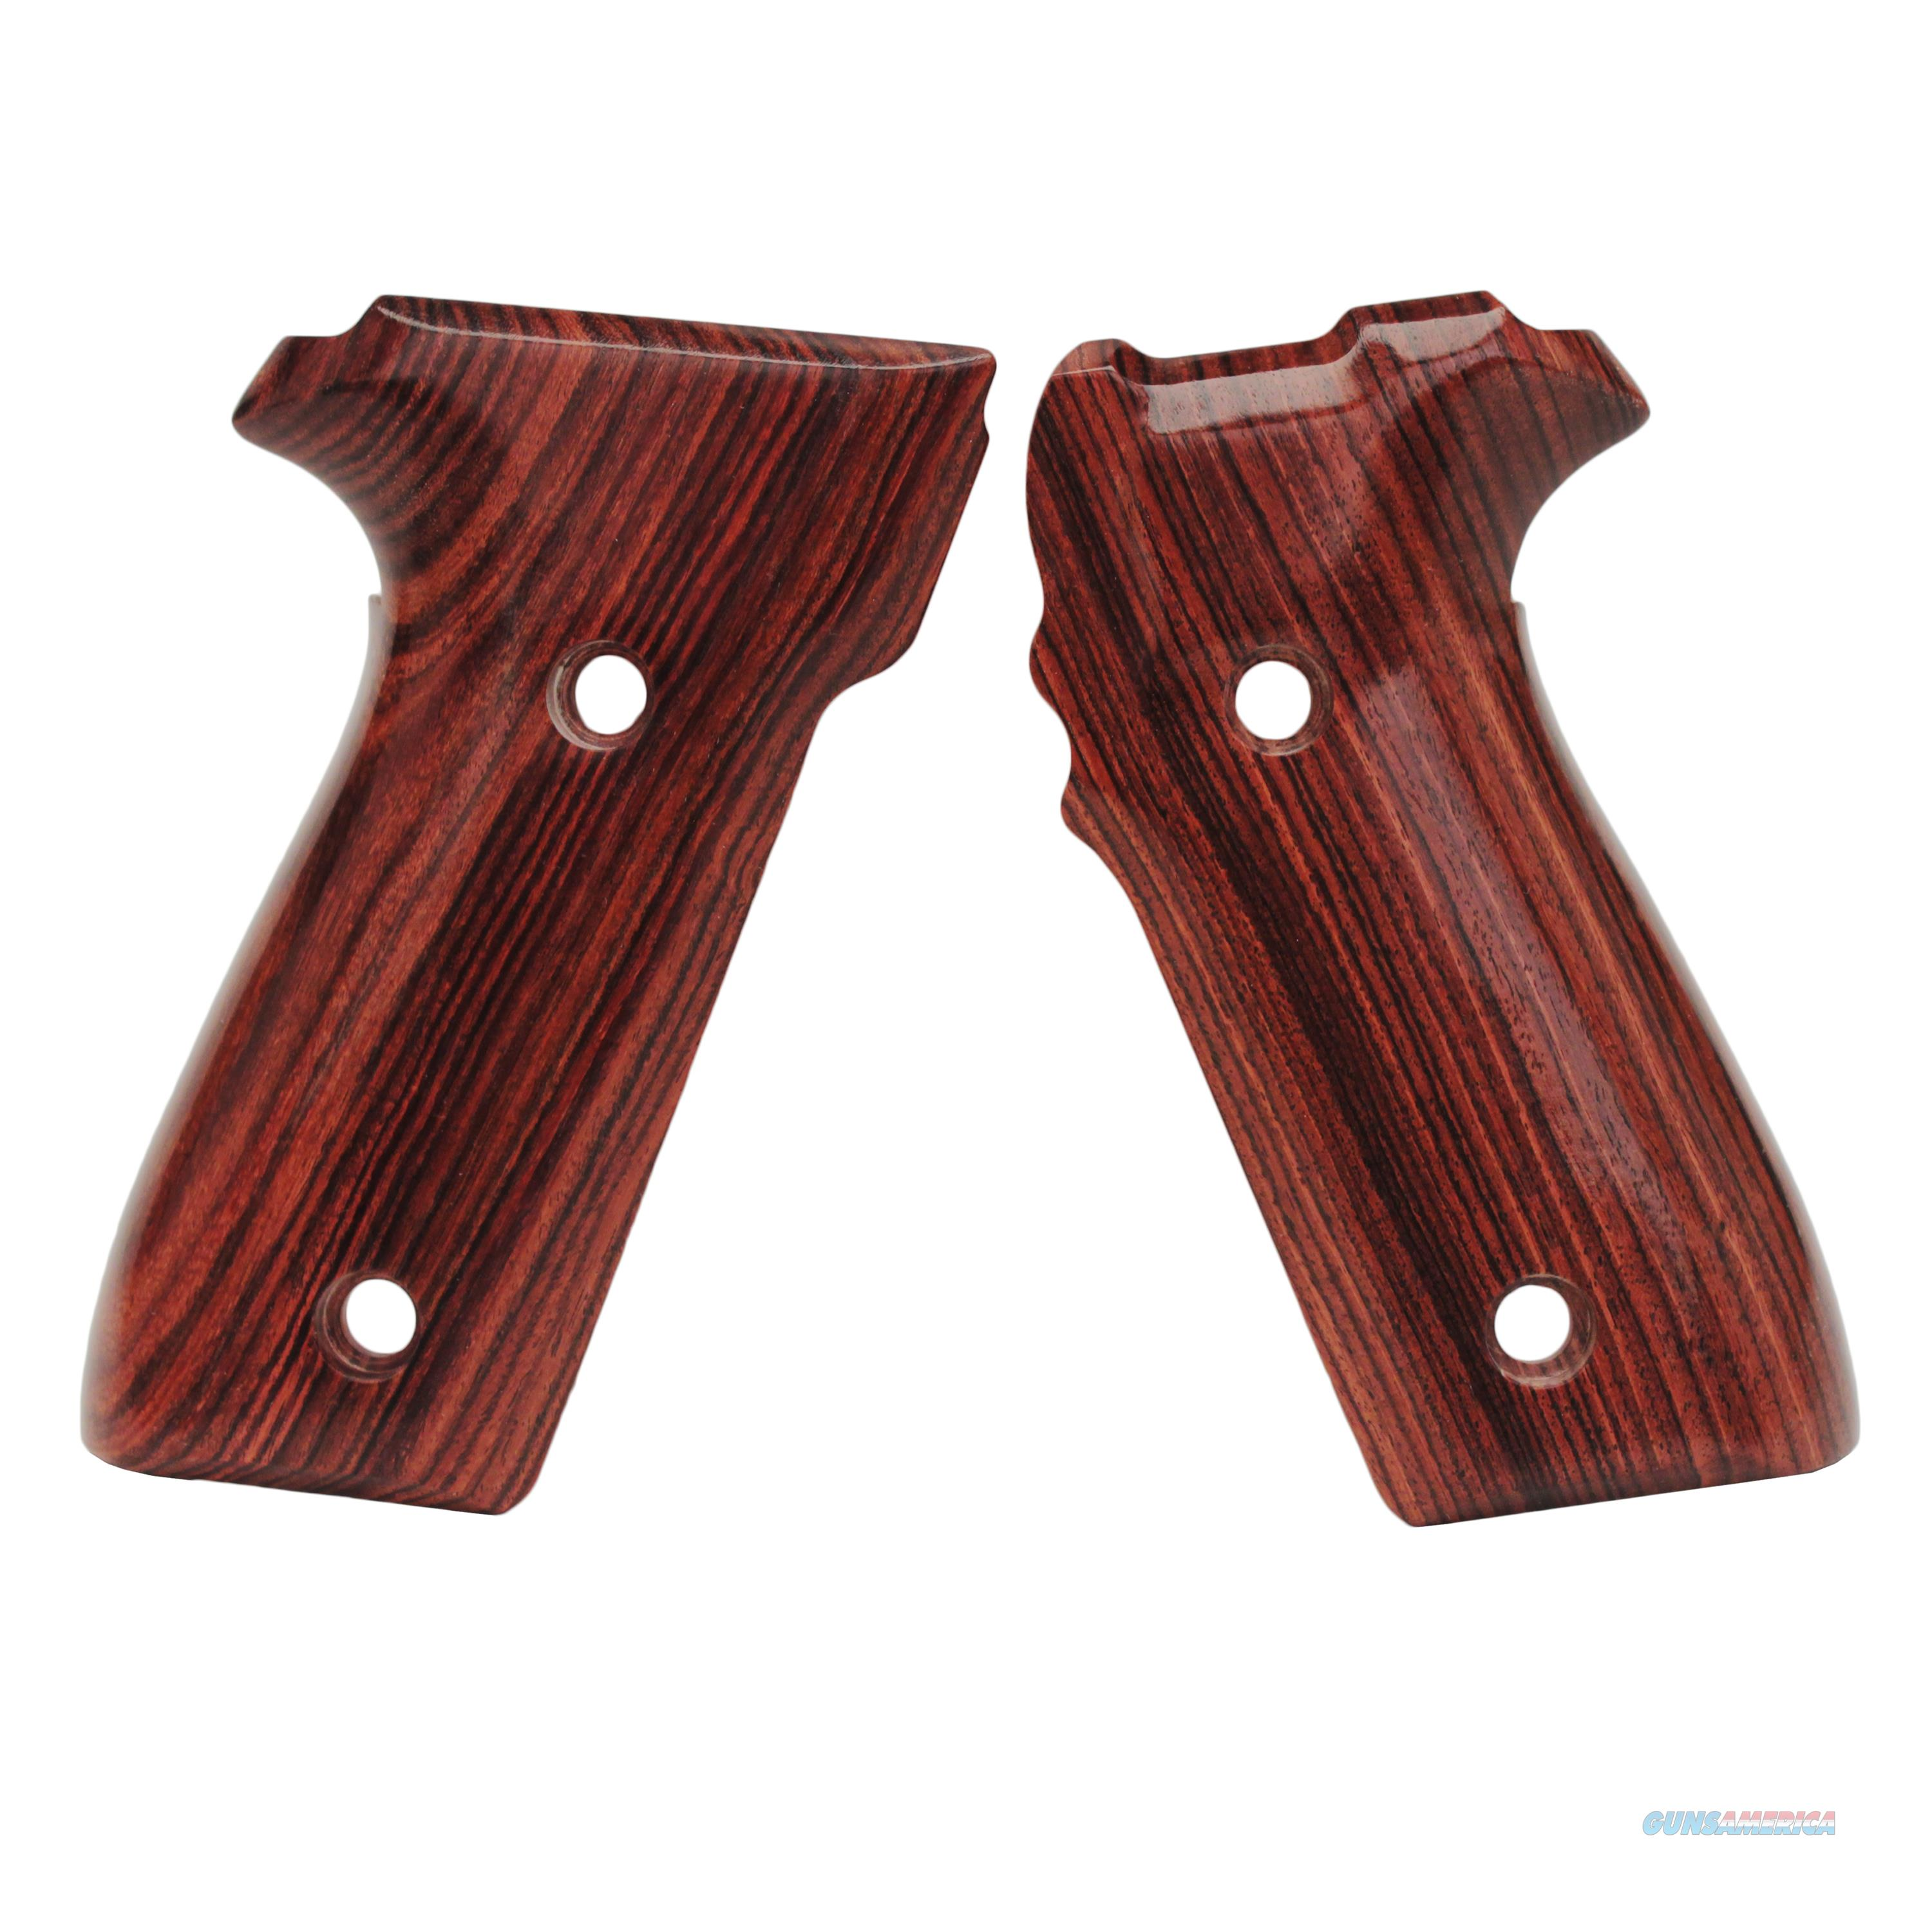 Hogue Sig P228/P229 Grips 28610  Non-Guns > Gunstocks, Grips & Wood